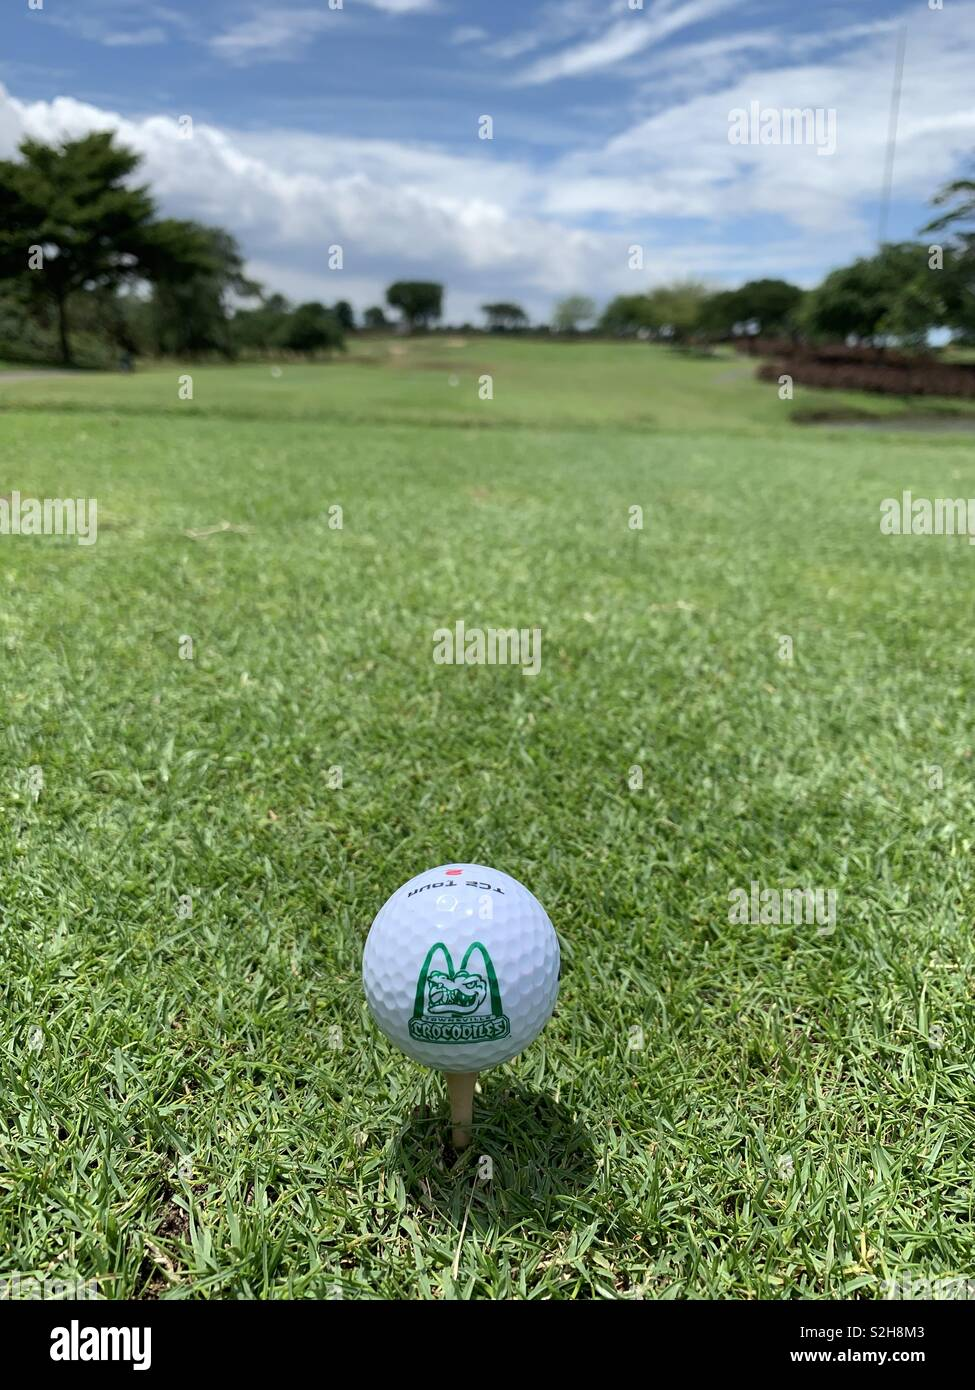 Tee time! Townsville Crocs Golf Ball, long gone team getting hit in Jakarta! - Stock Image